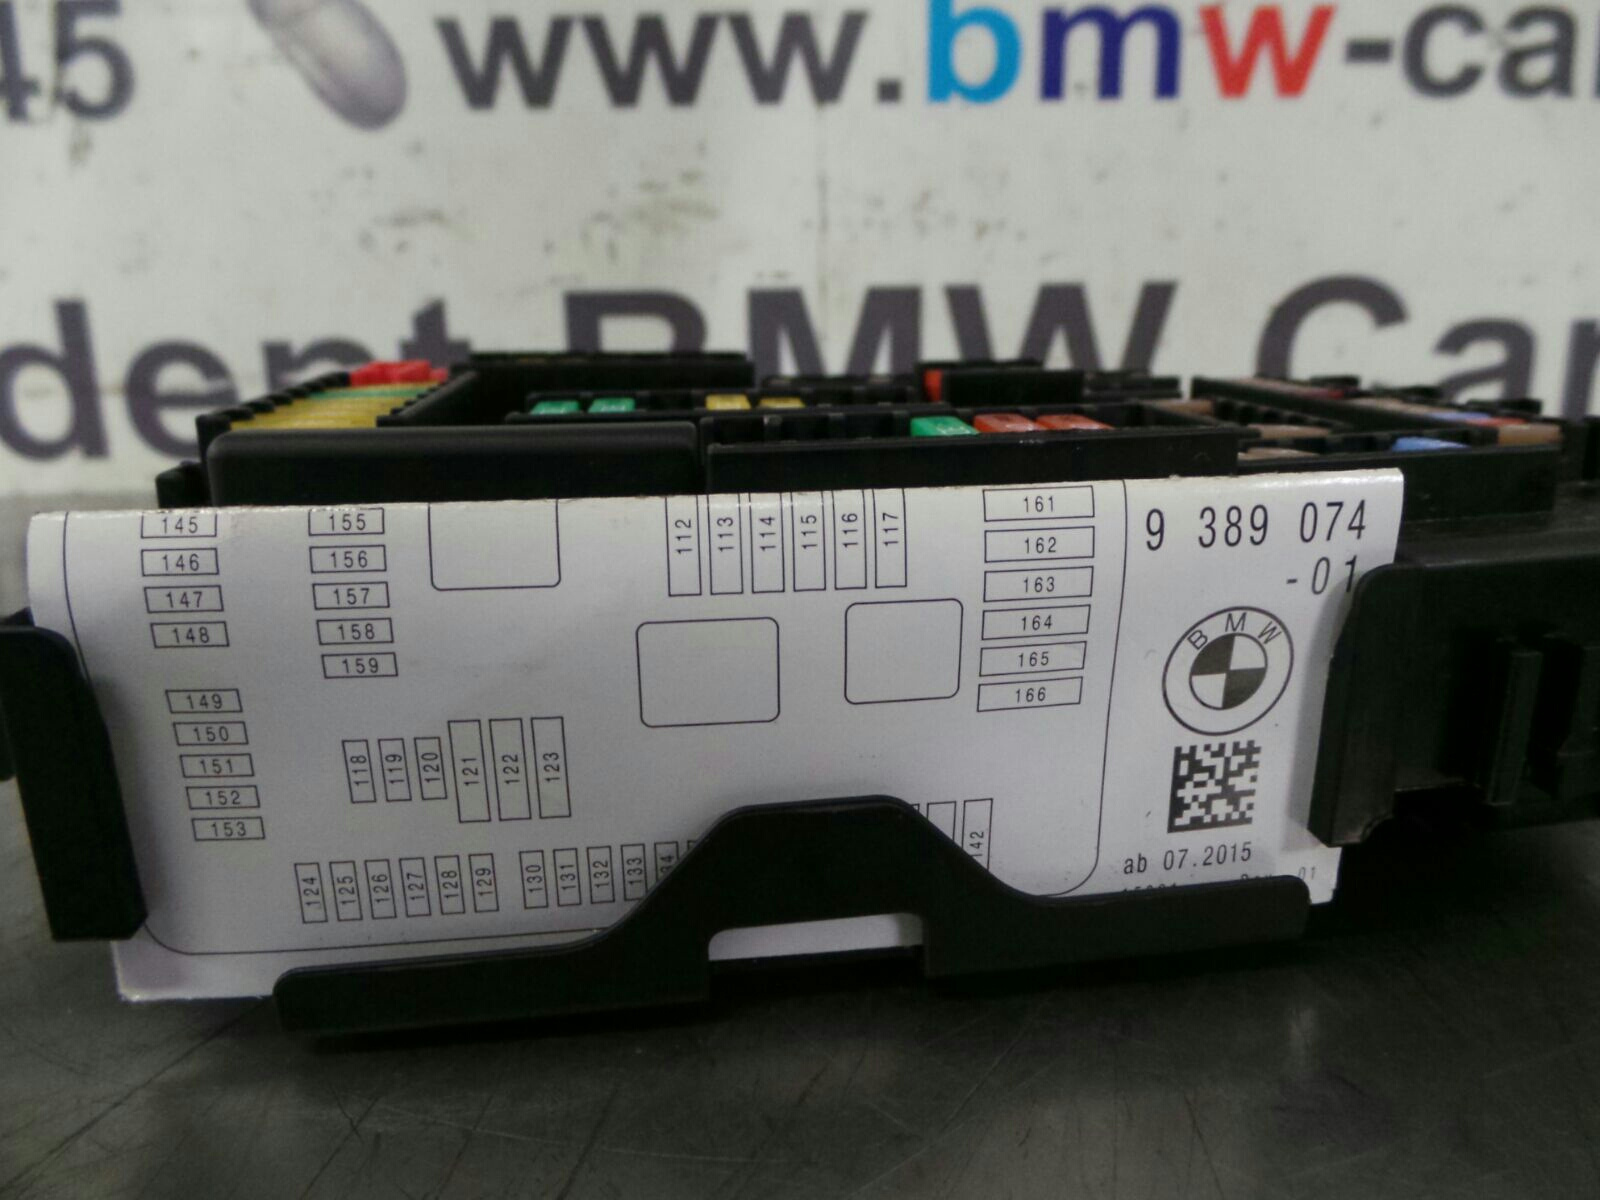 Bmw F20 Fuse Box Wiring Diagram Viscount Caravan 1 Series 9259466 9389070 Breaking For Used And Fusible Link